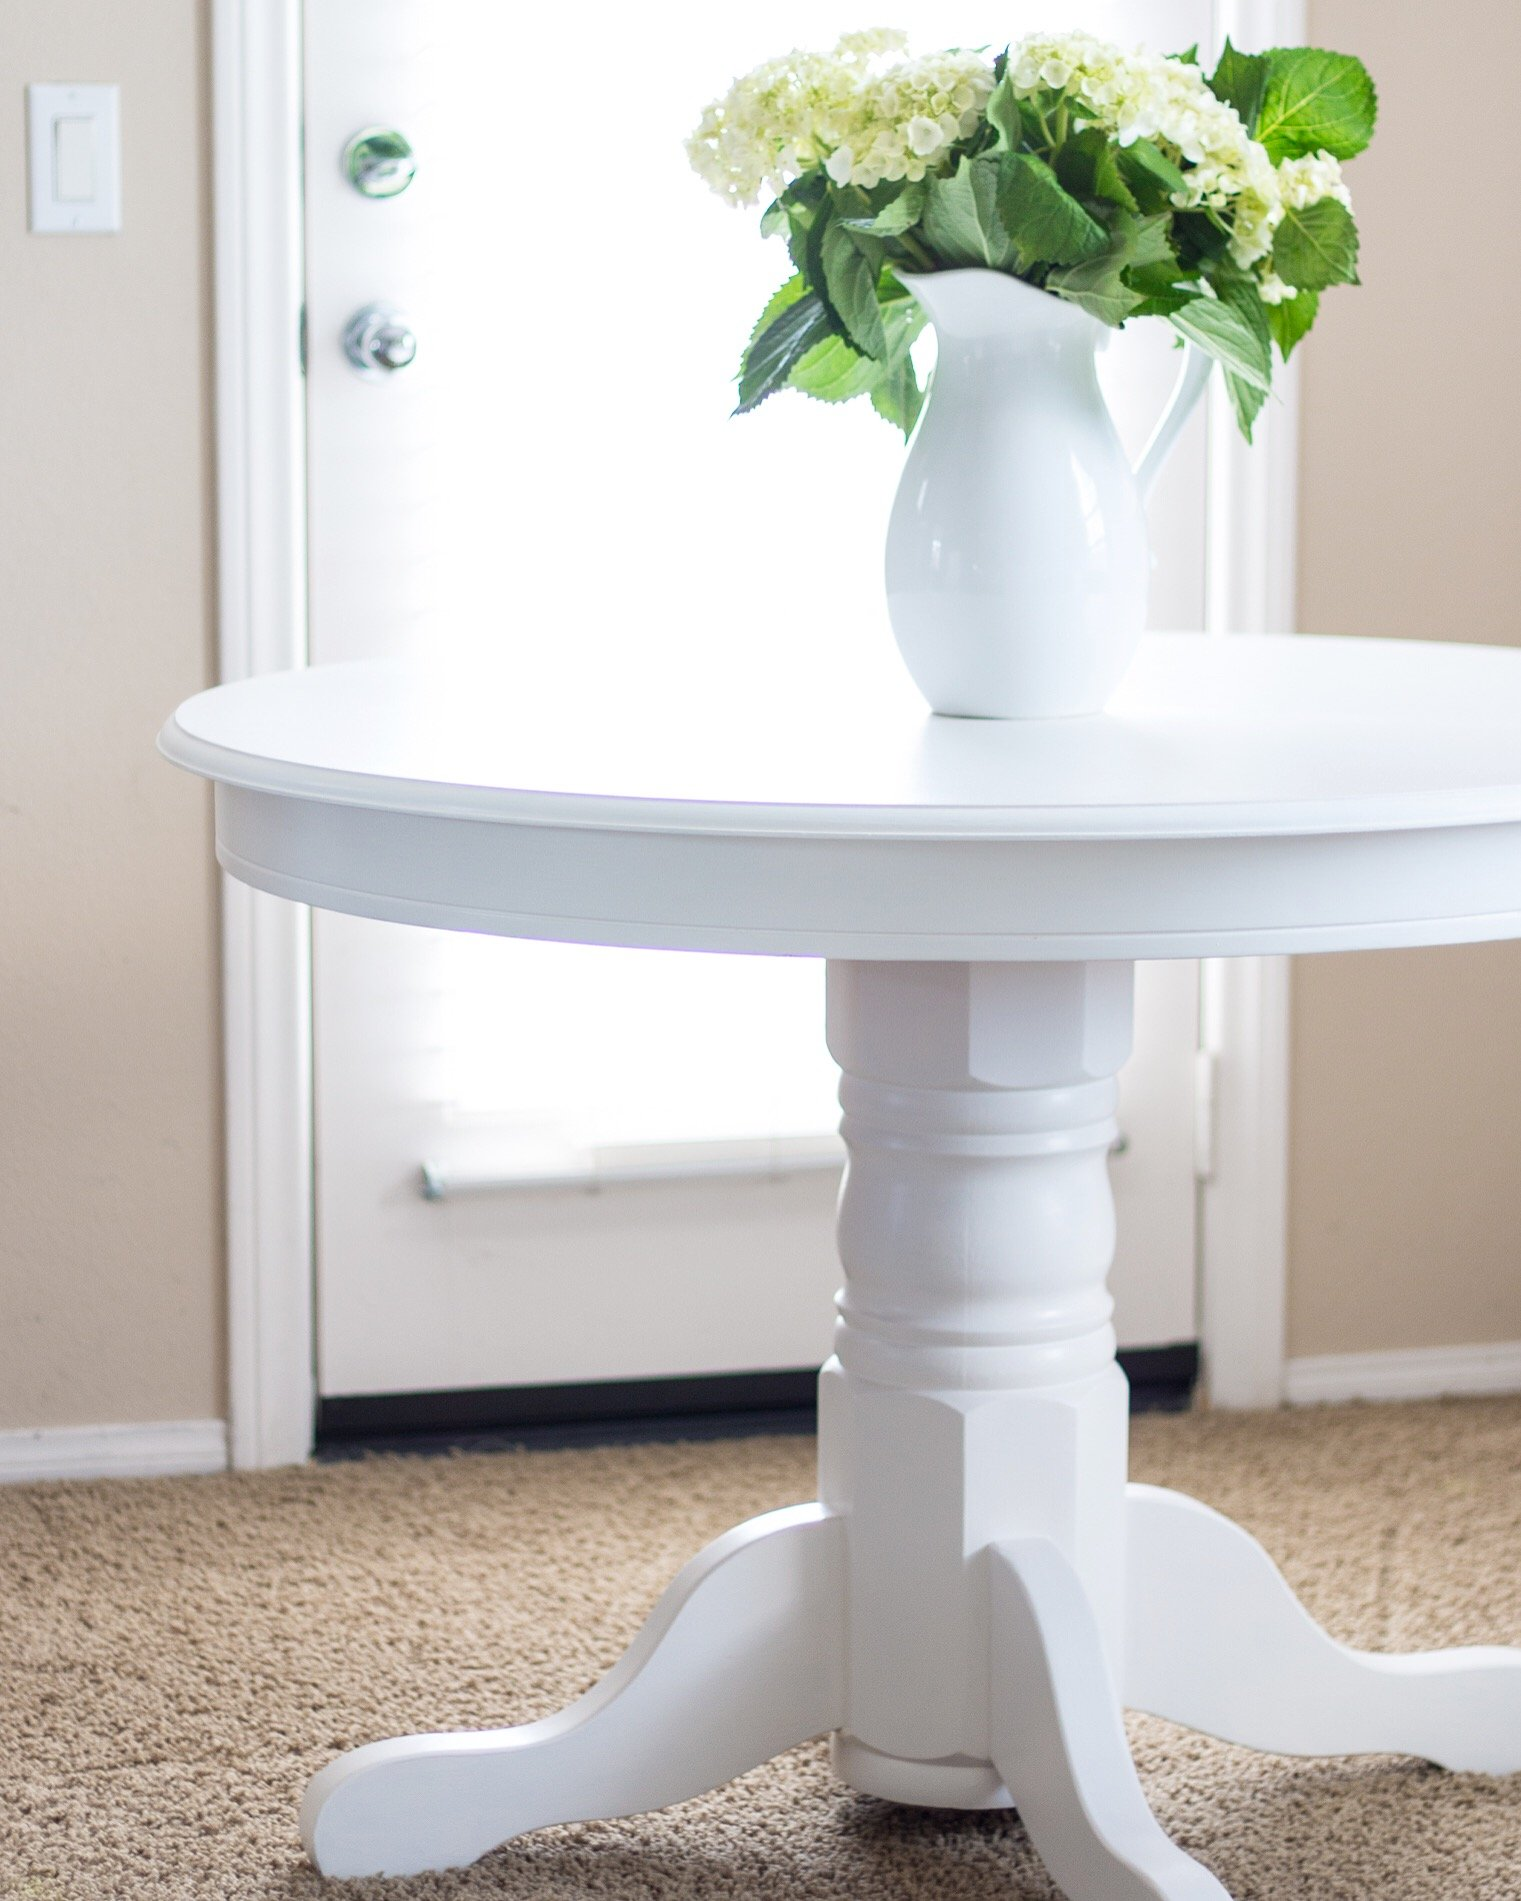 How to Paint a Table - A Thoughtful Place